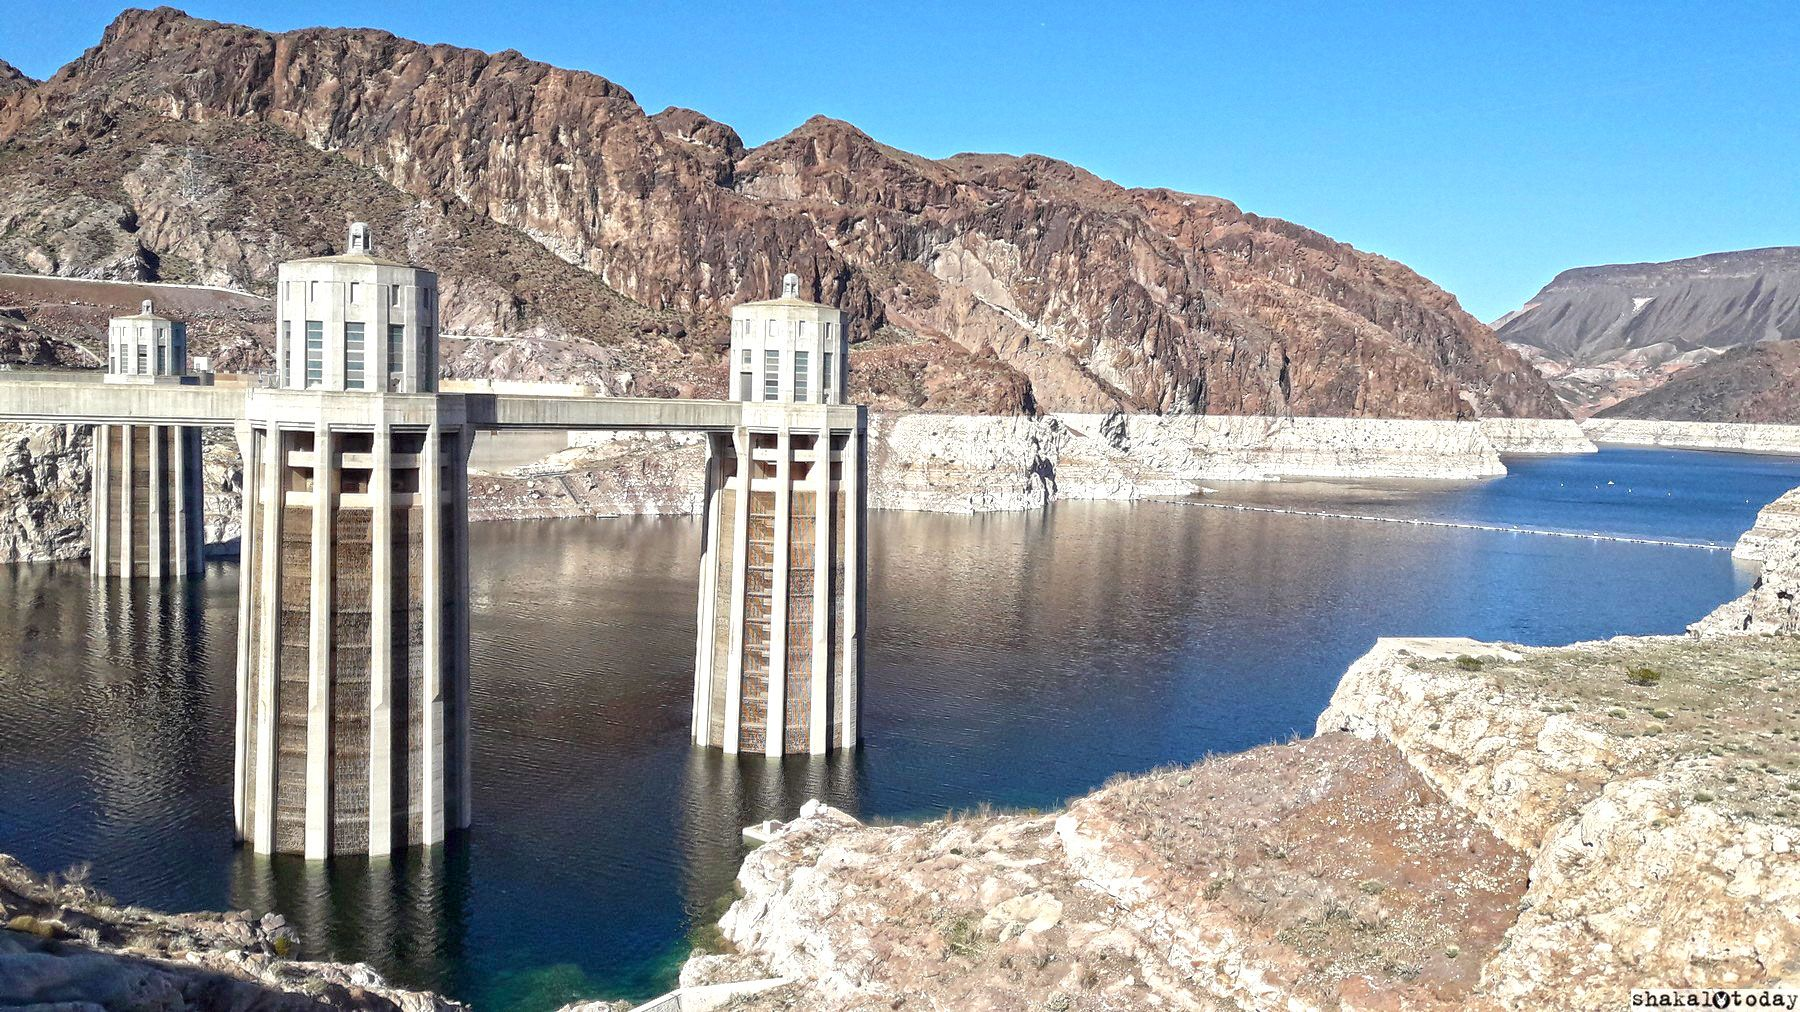 Shakal-Today-Hoover-Dam-0013.jpg